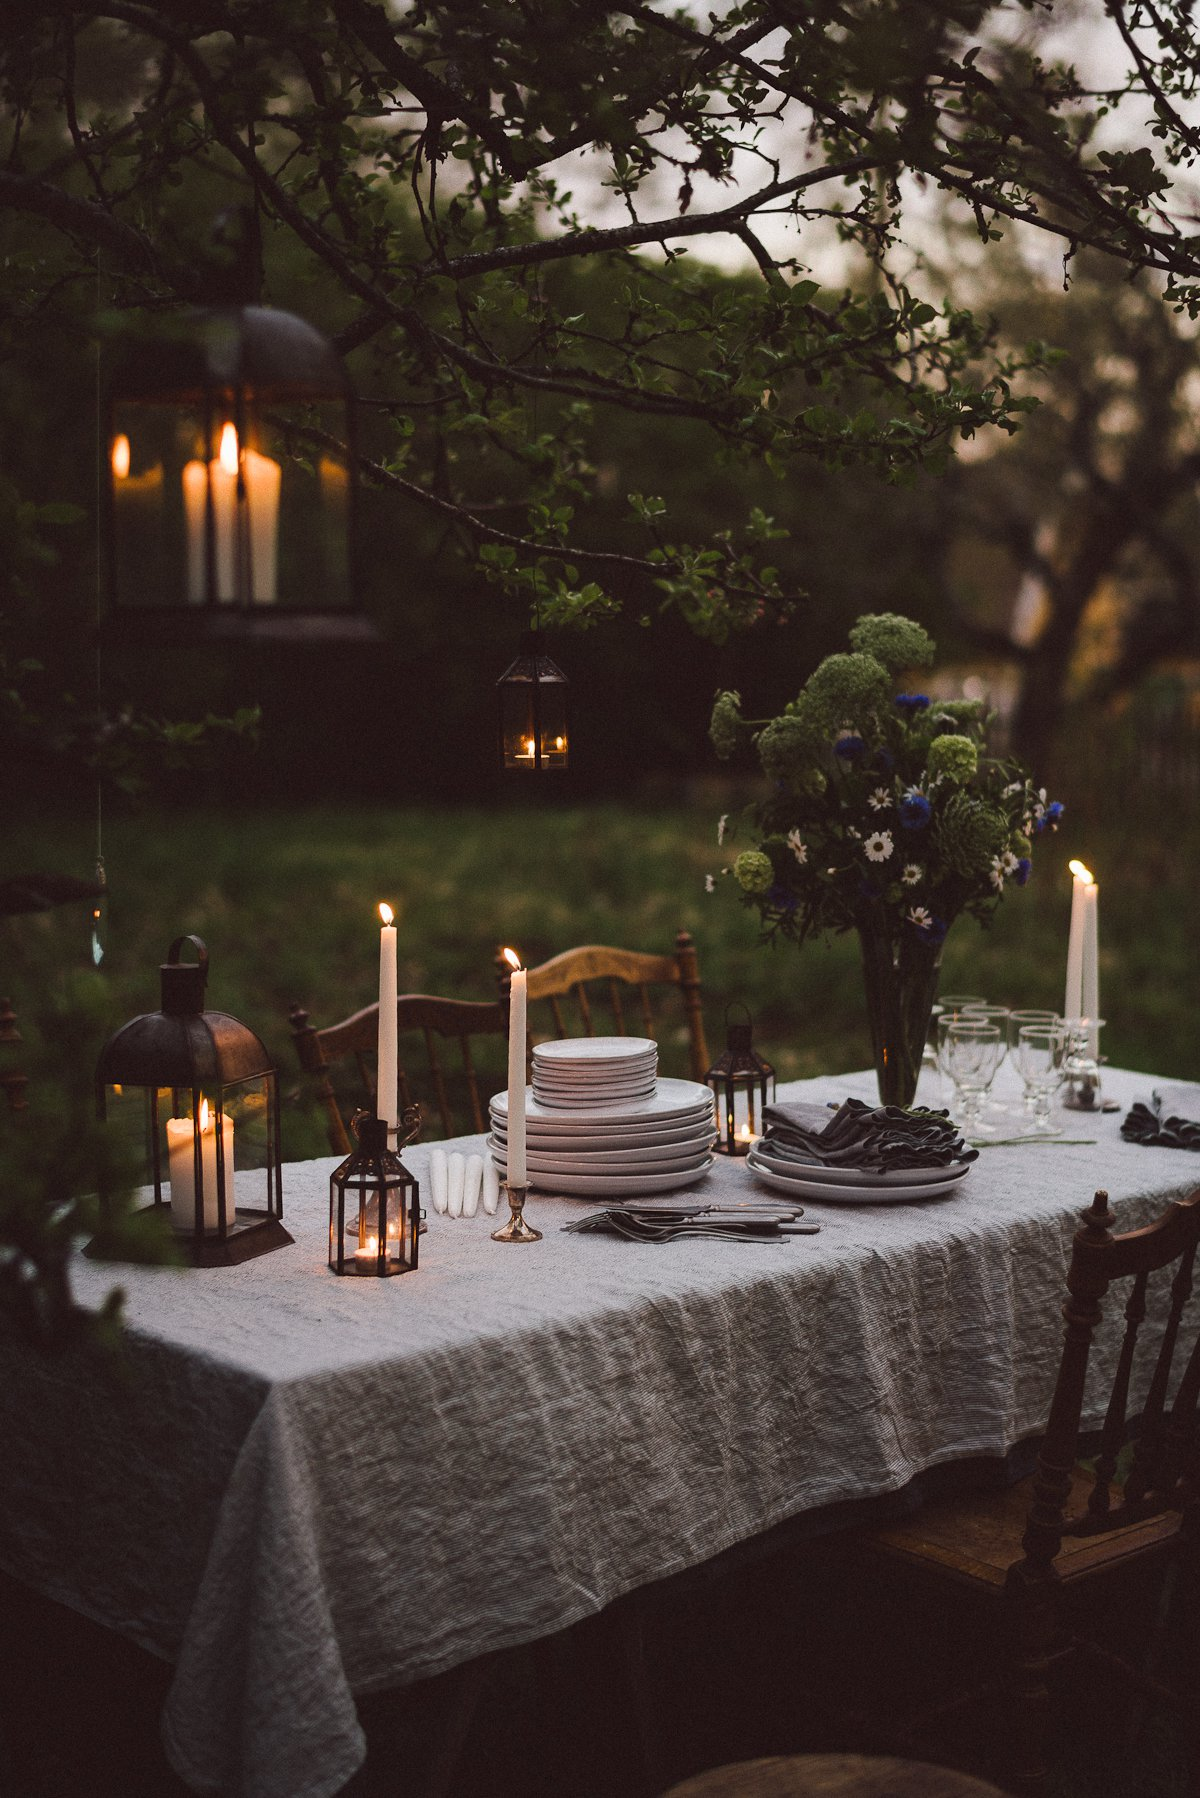 Babes_in_Boyland-TineK_midsummer-dinner-14.jpg